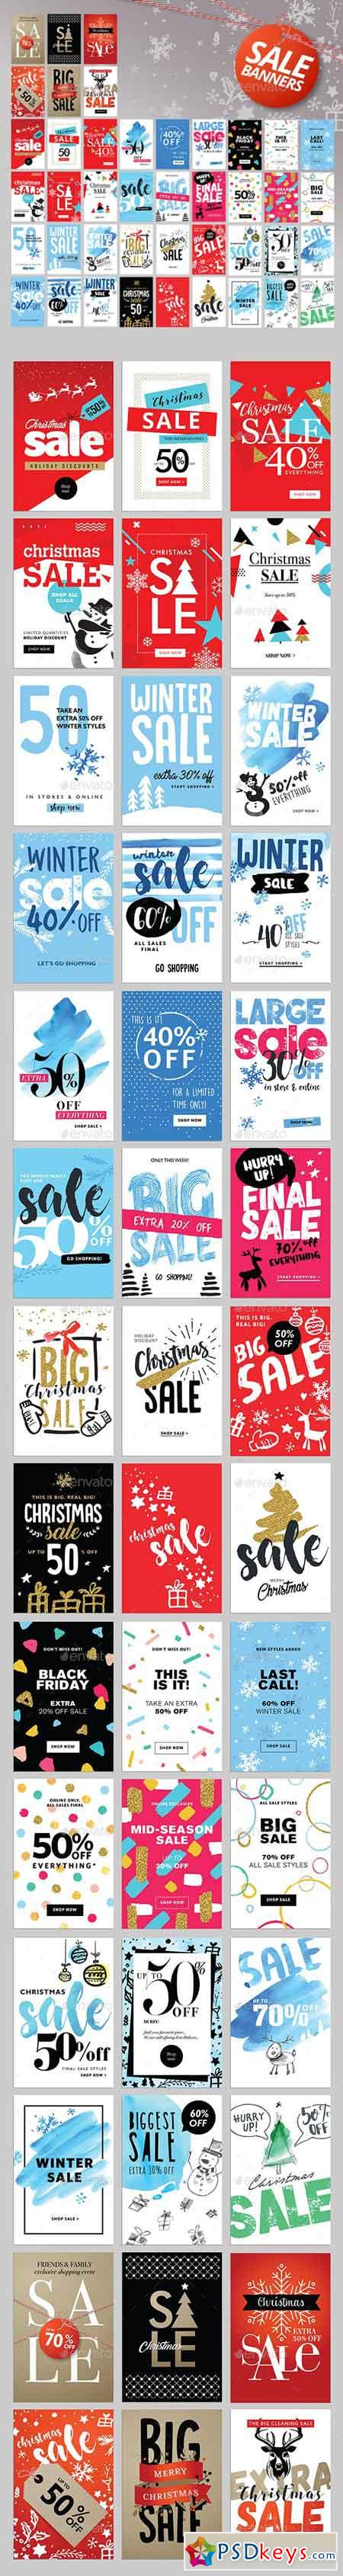 Set of Winter Mobile Sale Banners 18932239